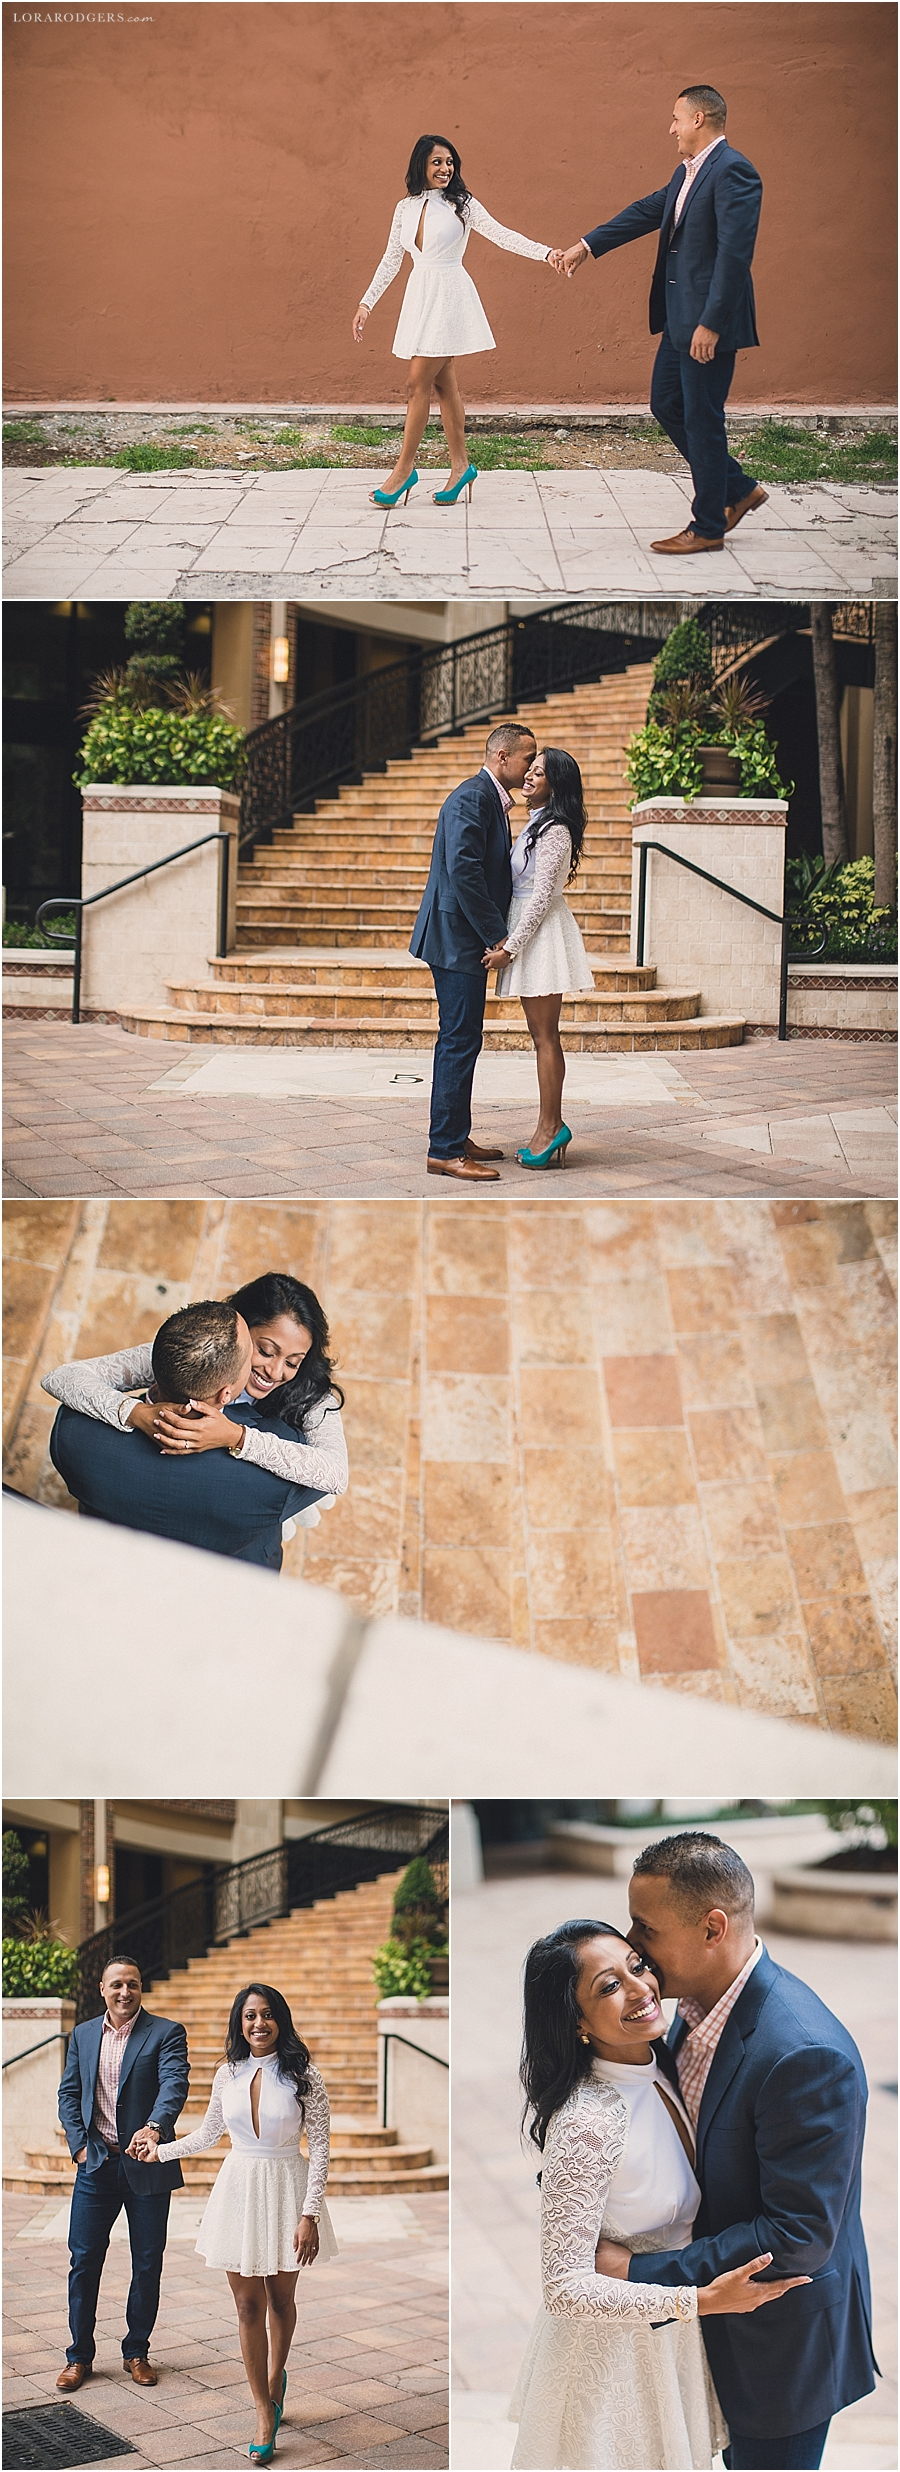 Downtown_Orlando_Florida_Engagement_001